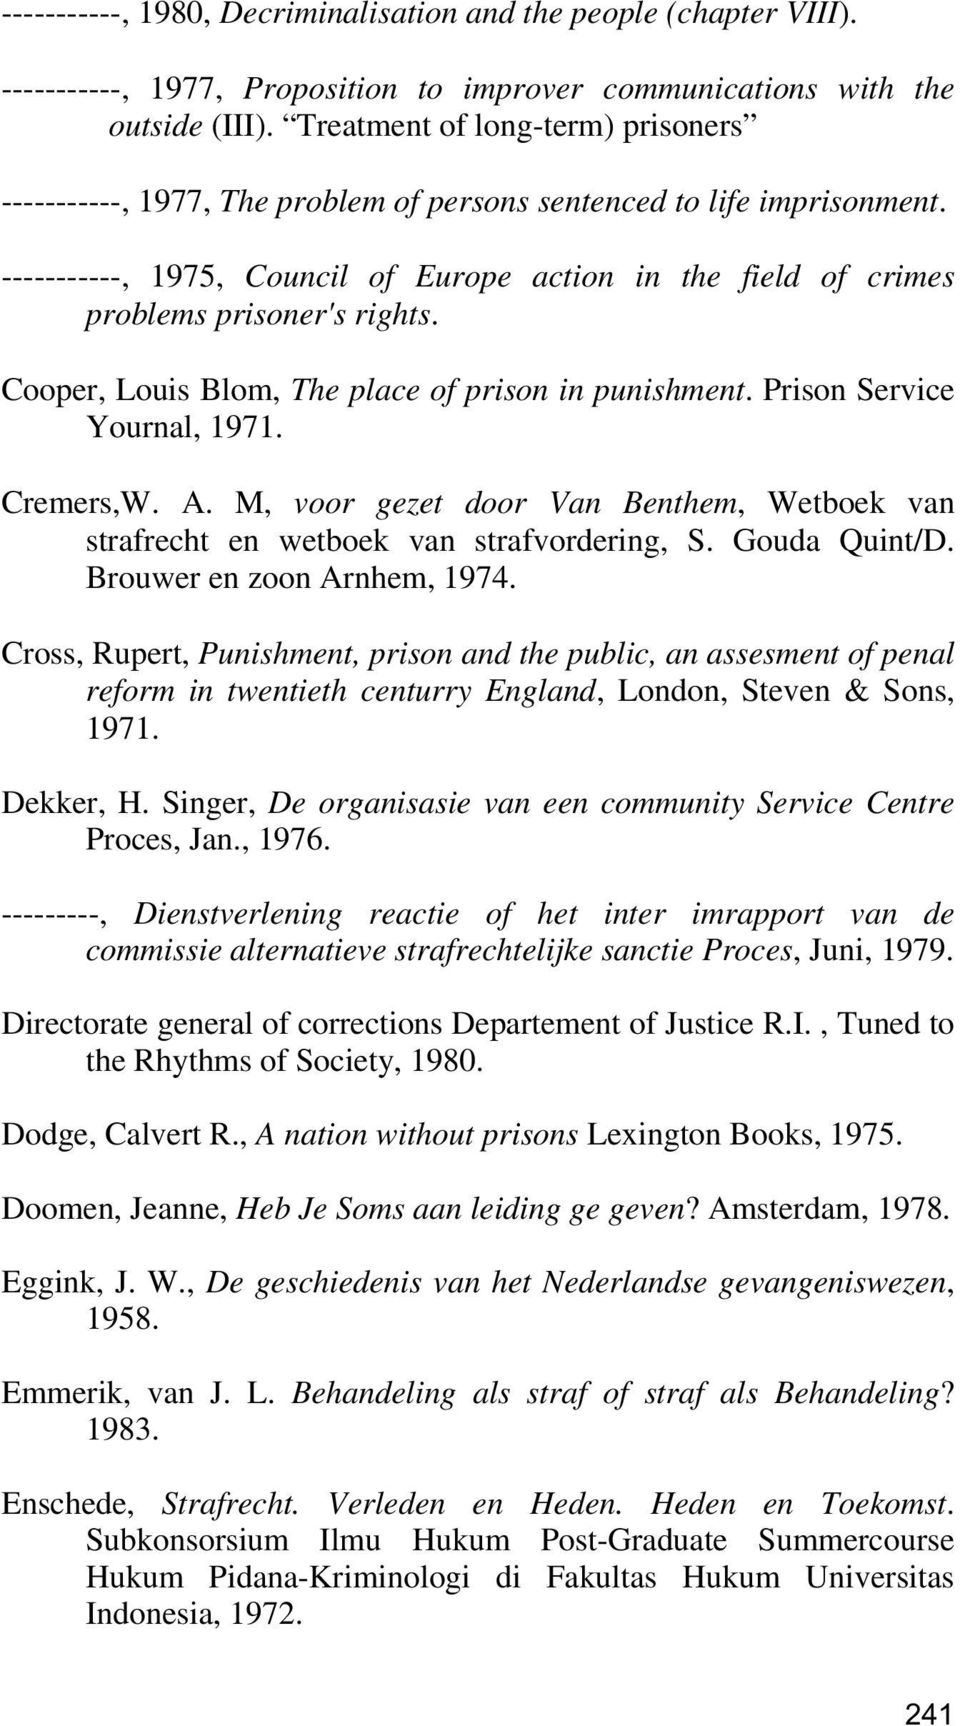 -----------, 1975, Council of Europe action in the field of crimes problems prisoner's rights. Cooper, Louis Blom, The place of prison in punishment. Prison Service Yournal, 1971. Cremers,W. A.